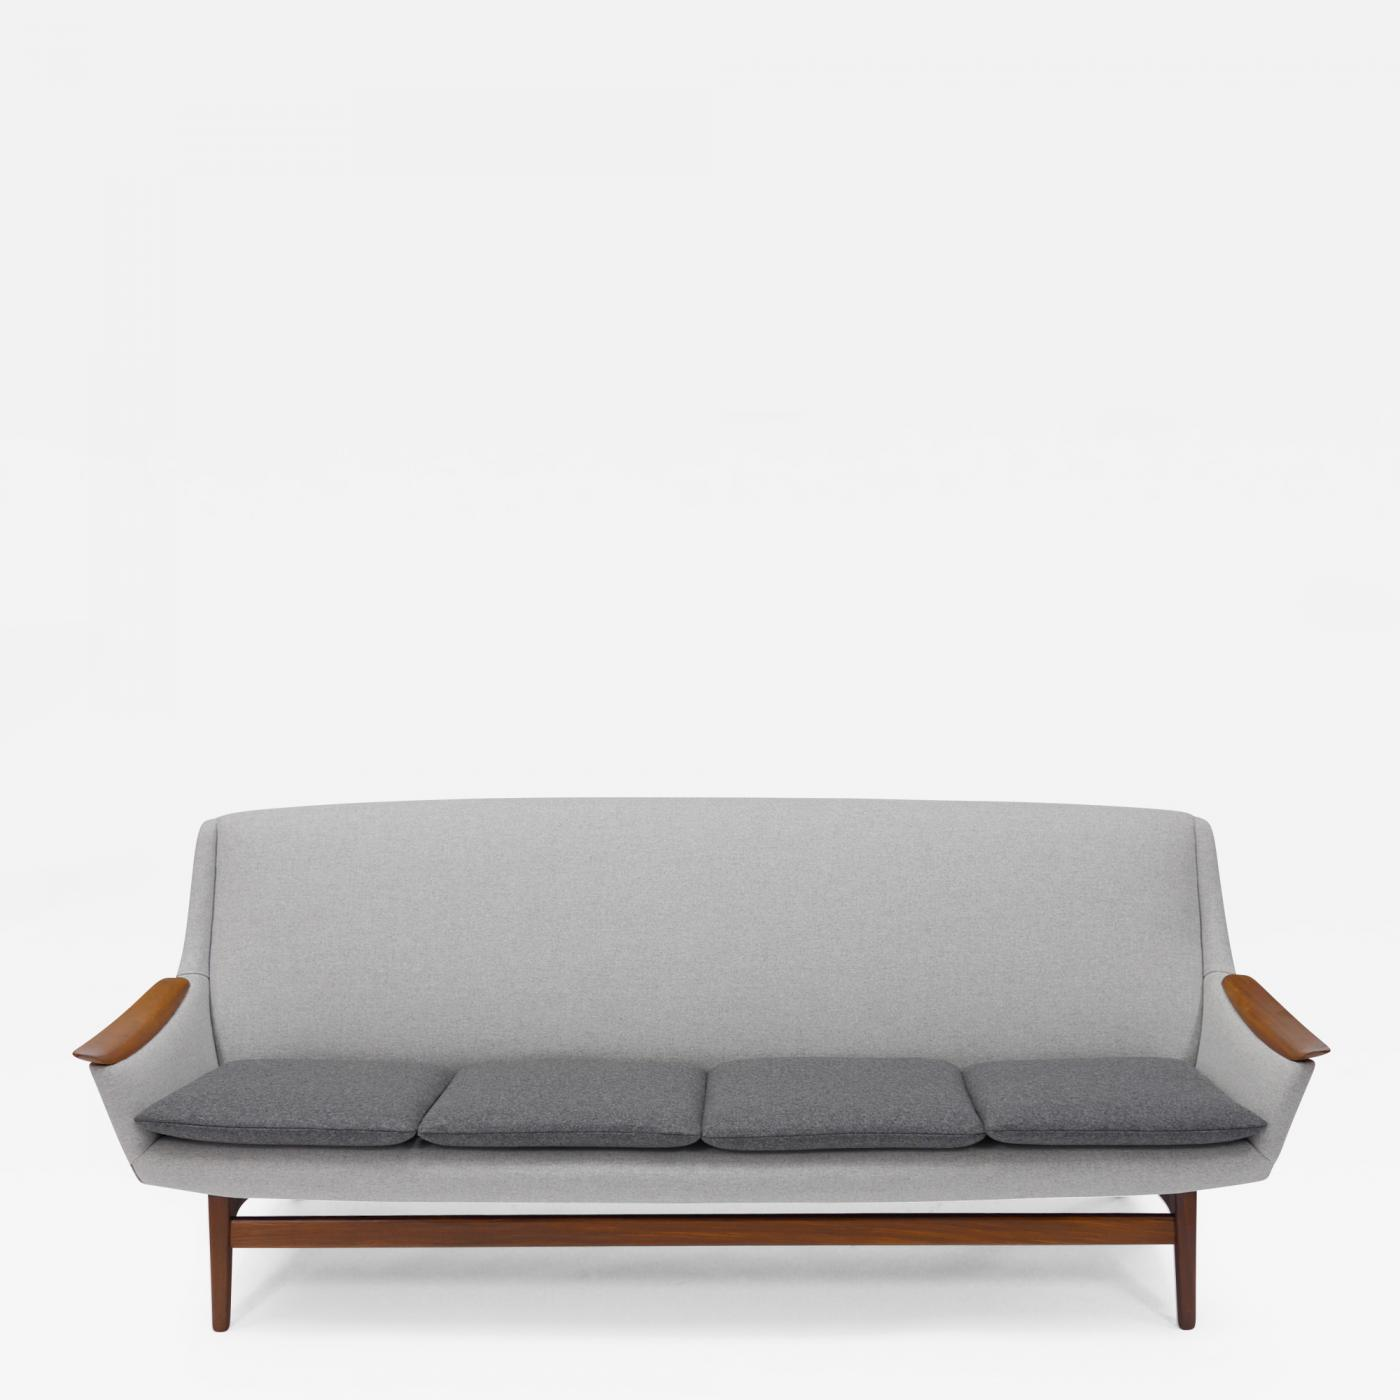 Rastad & Relling Fine Scandinavian Sofa by Rastad and Relling